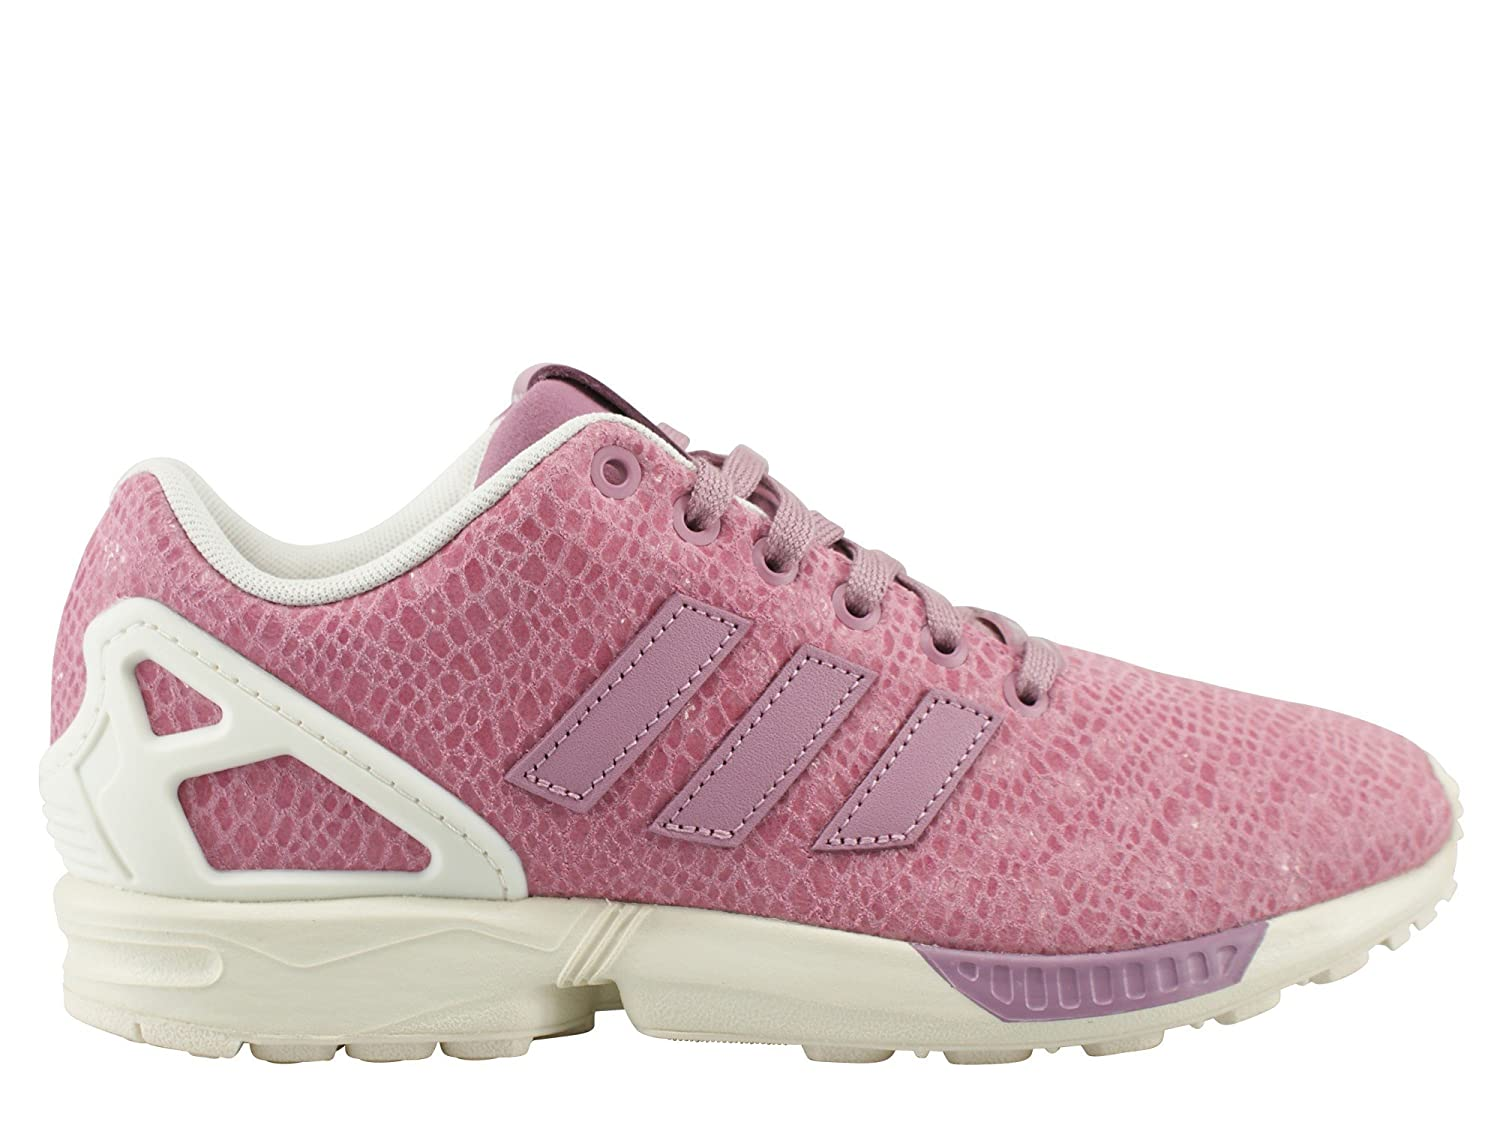 339376033 Adidas Zx Flux Trainers Pink  Amazon.co.uk  Shoes   Bags